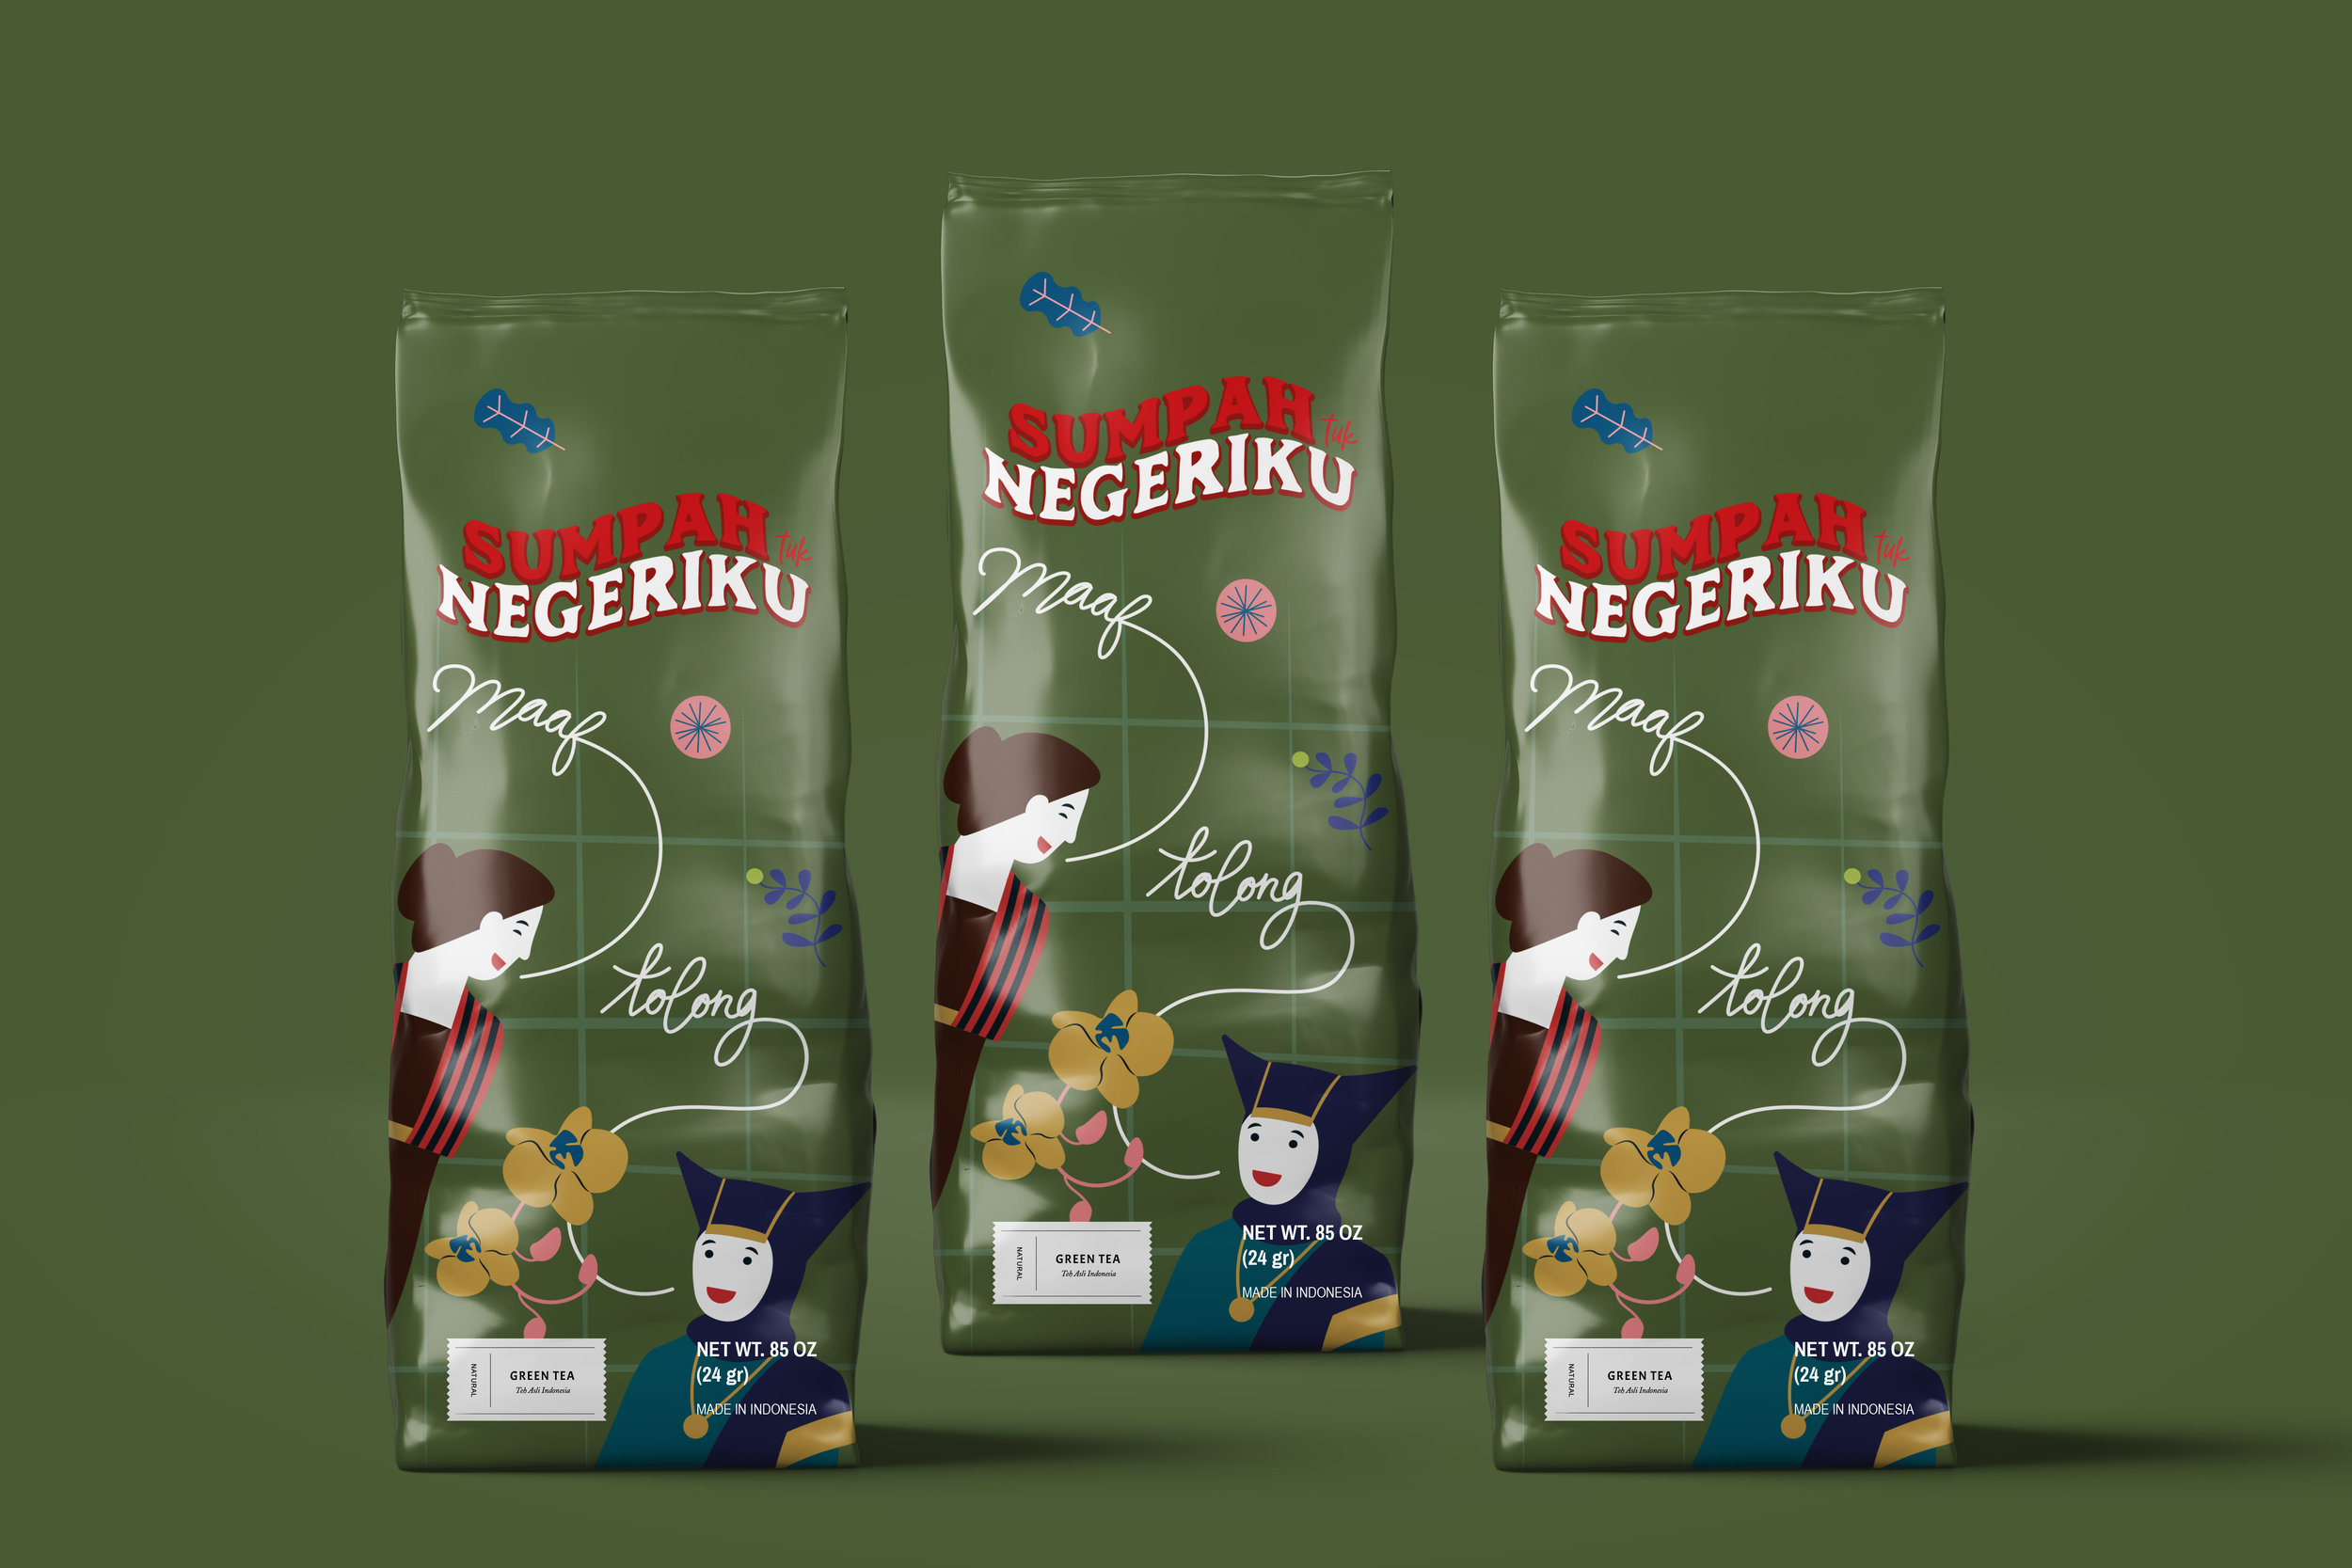 Sumpah Tuk Negeriku (The Youth Pledge) The Authentic Indonesia Tea Packaging Design / World Brand & Packaging Design Society